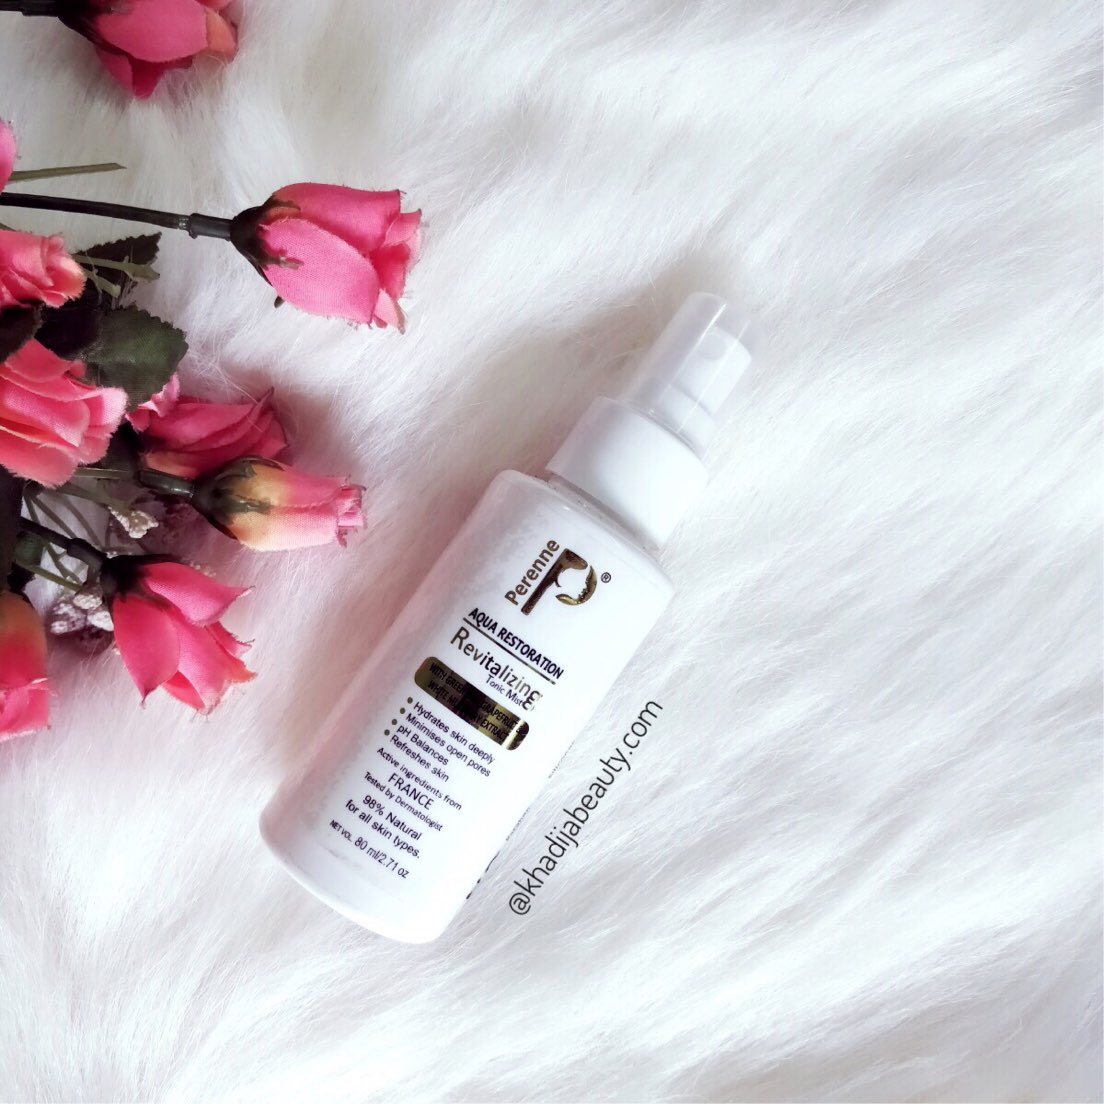 Perenne cosmetics face mist review